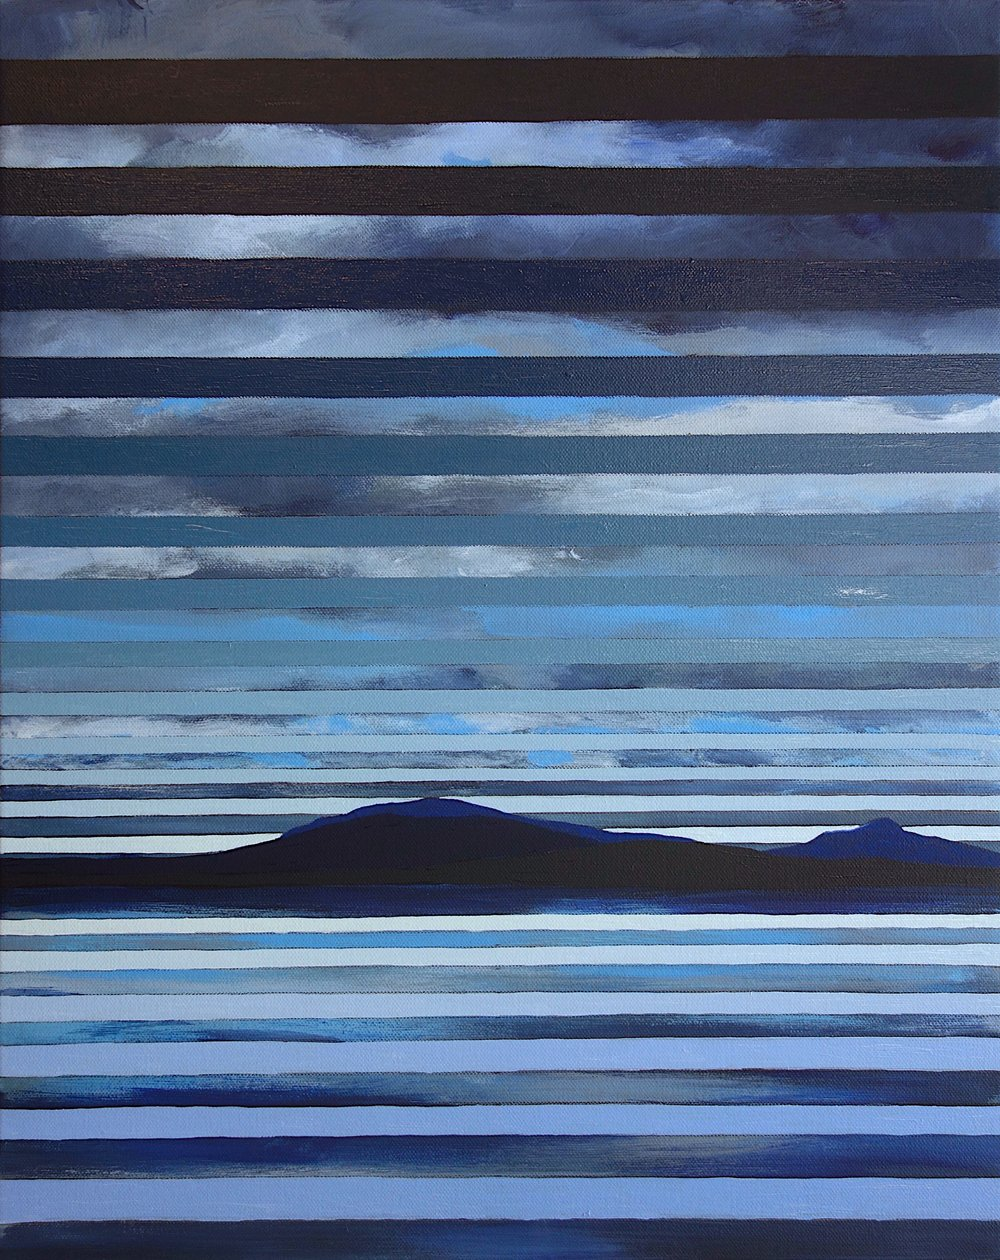 """Yellowstone Lake Study, 2016. Oil and Acrylic on Canvas. 20""""x16"""" (51x41cm)"""